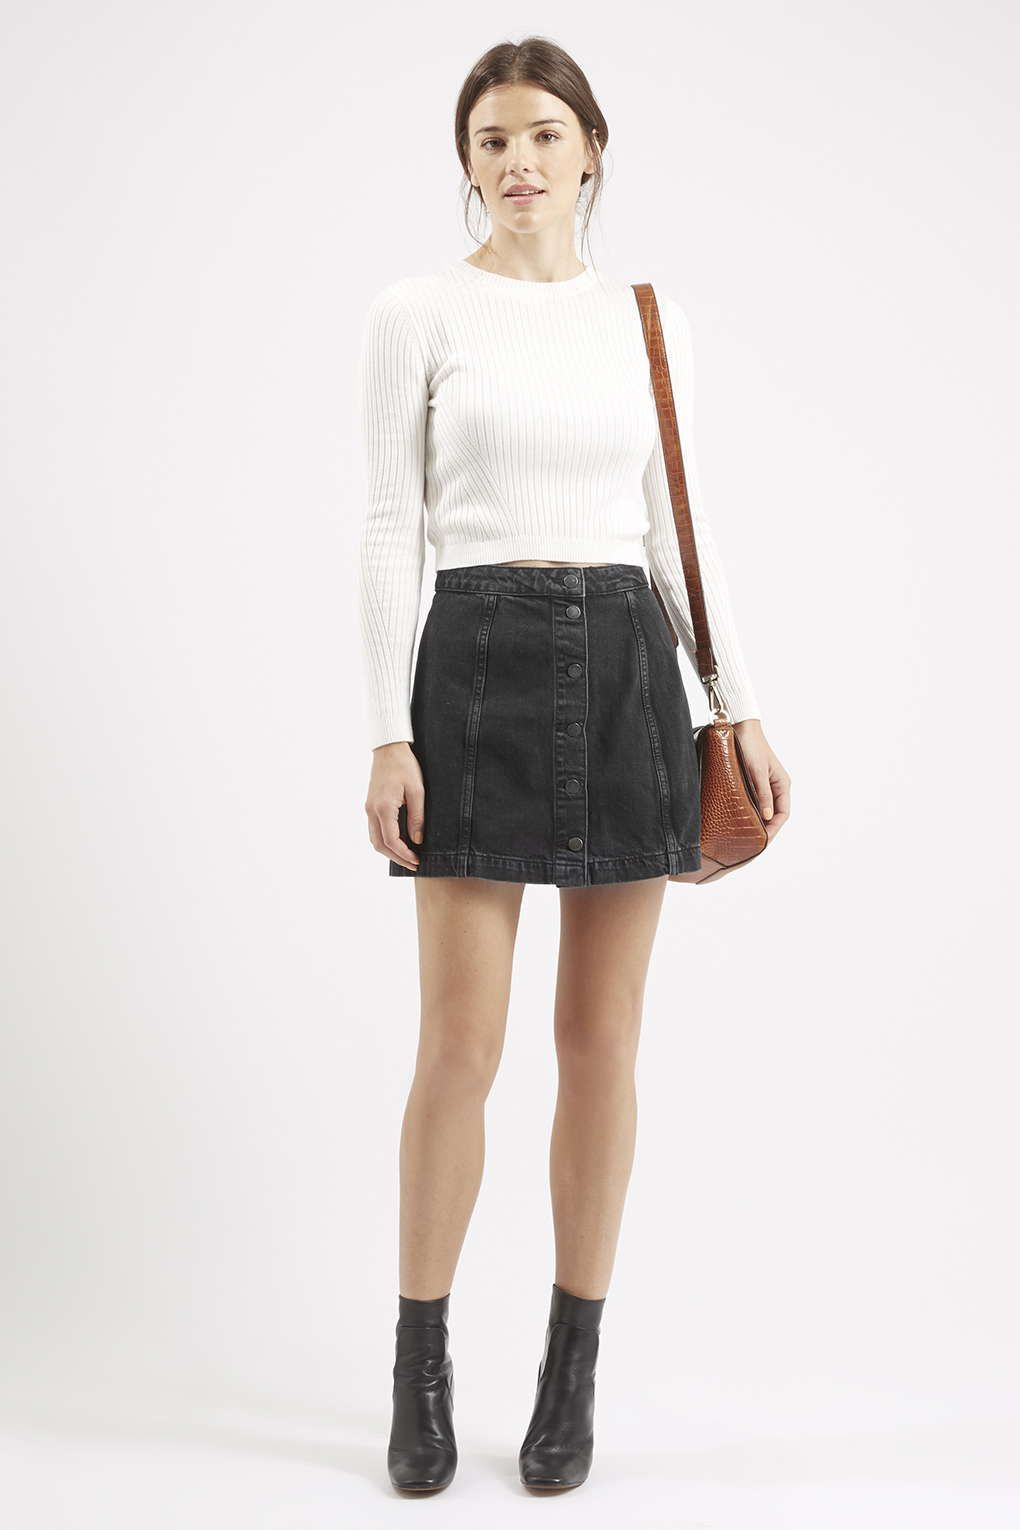 PETITE Black Denim Skirt - Petite - Clothing | Black denim skirt ...